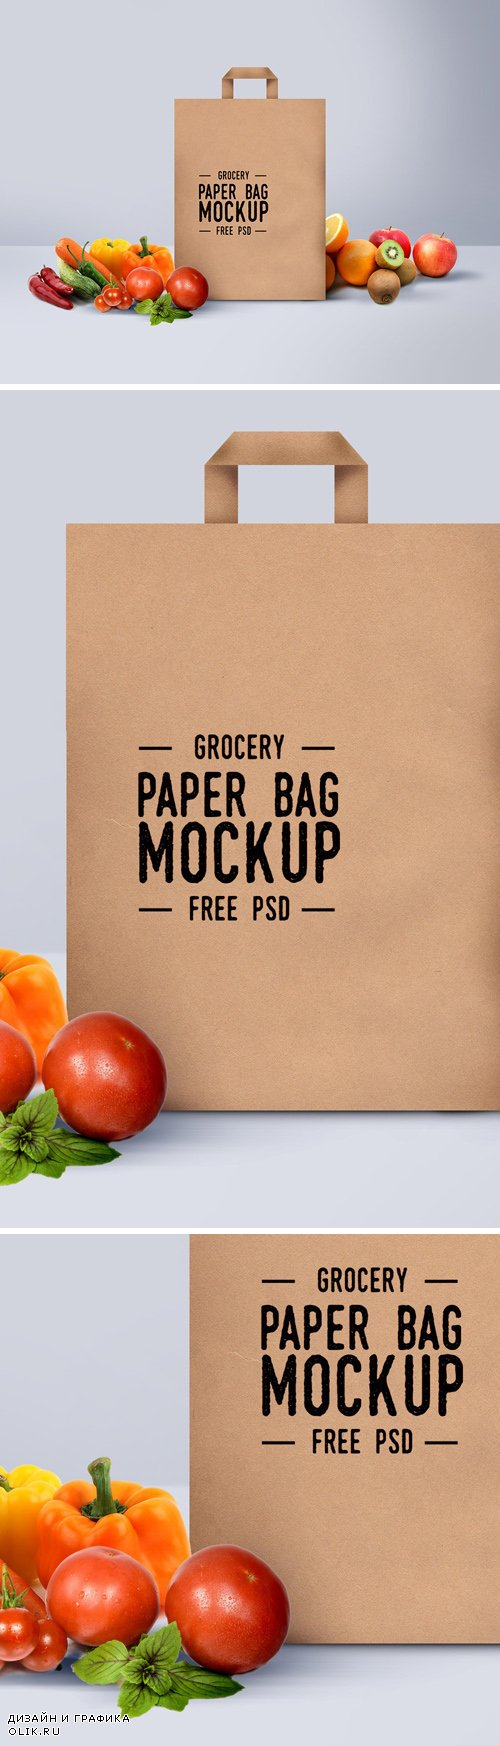 Shopping Paper Bag Mockup, part 3